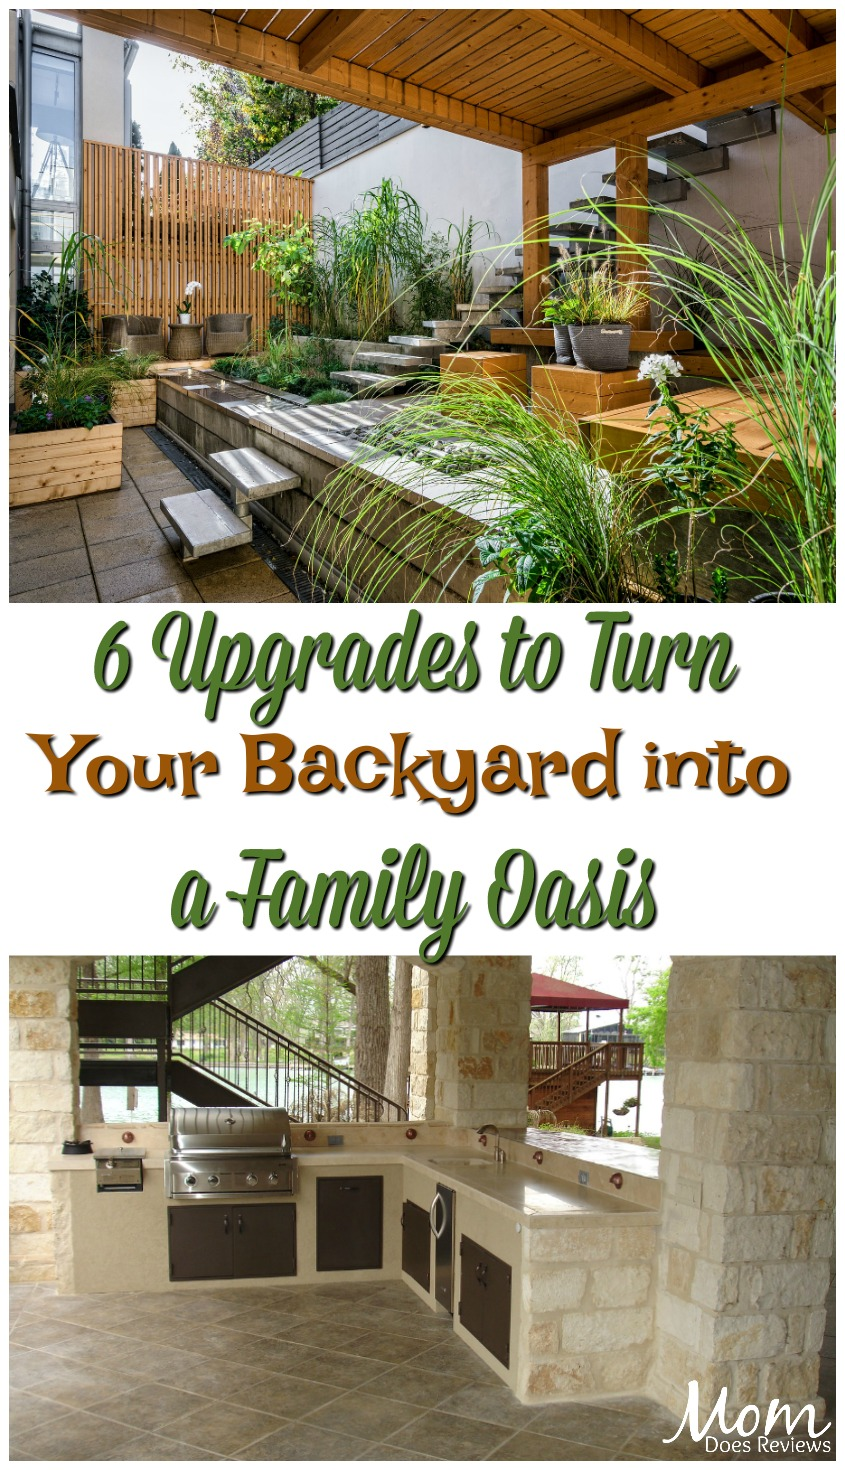 6 Upgrades for Turning Your Backyard into a Family Oasis #home #backyard #diy #family